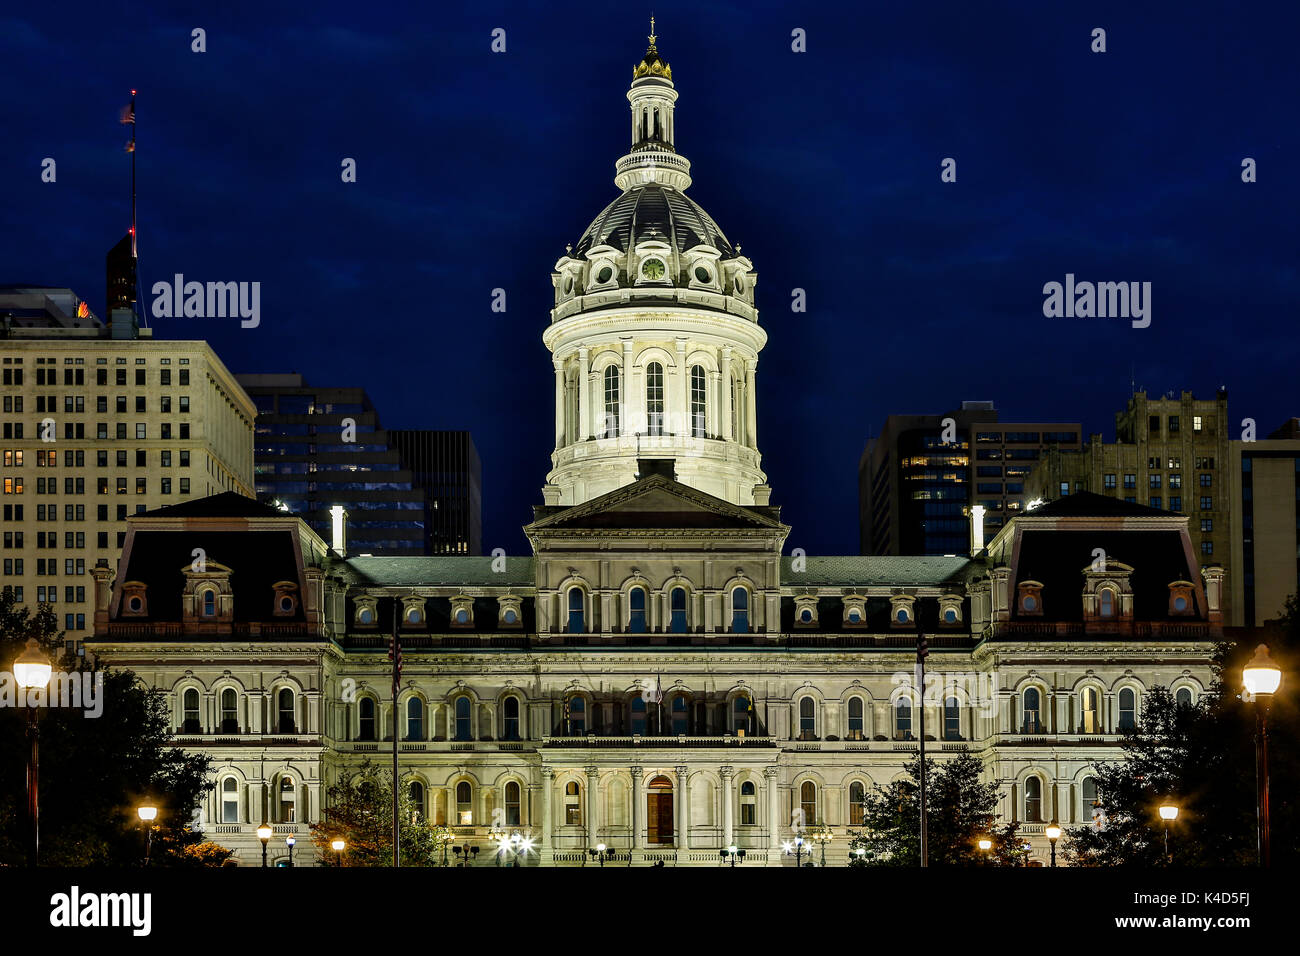 Architecture Baltimore Stock Photos Architecture Baltimore Stock Images Alamy